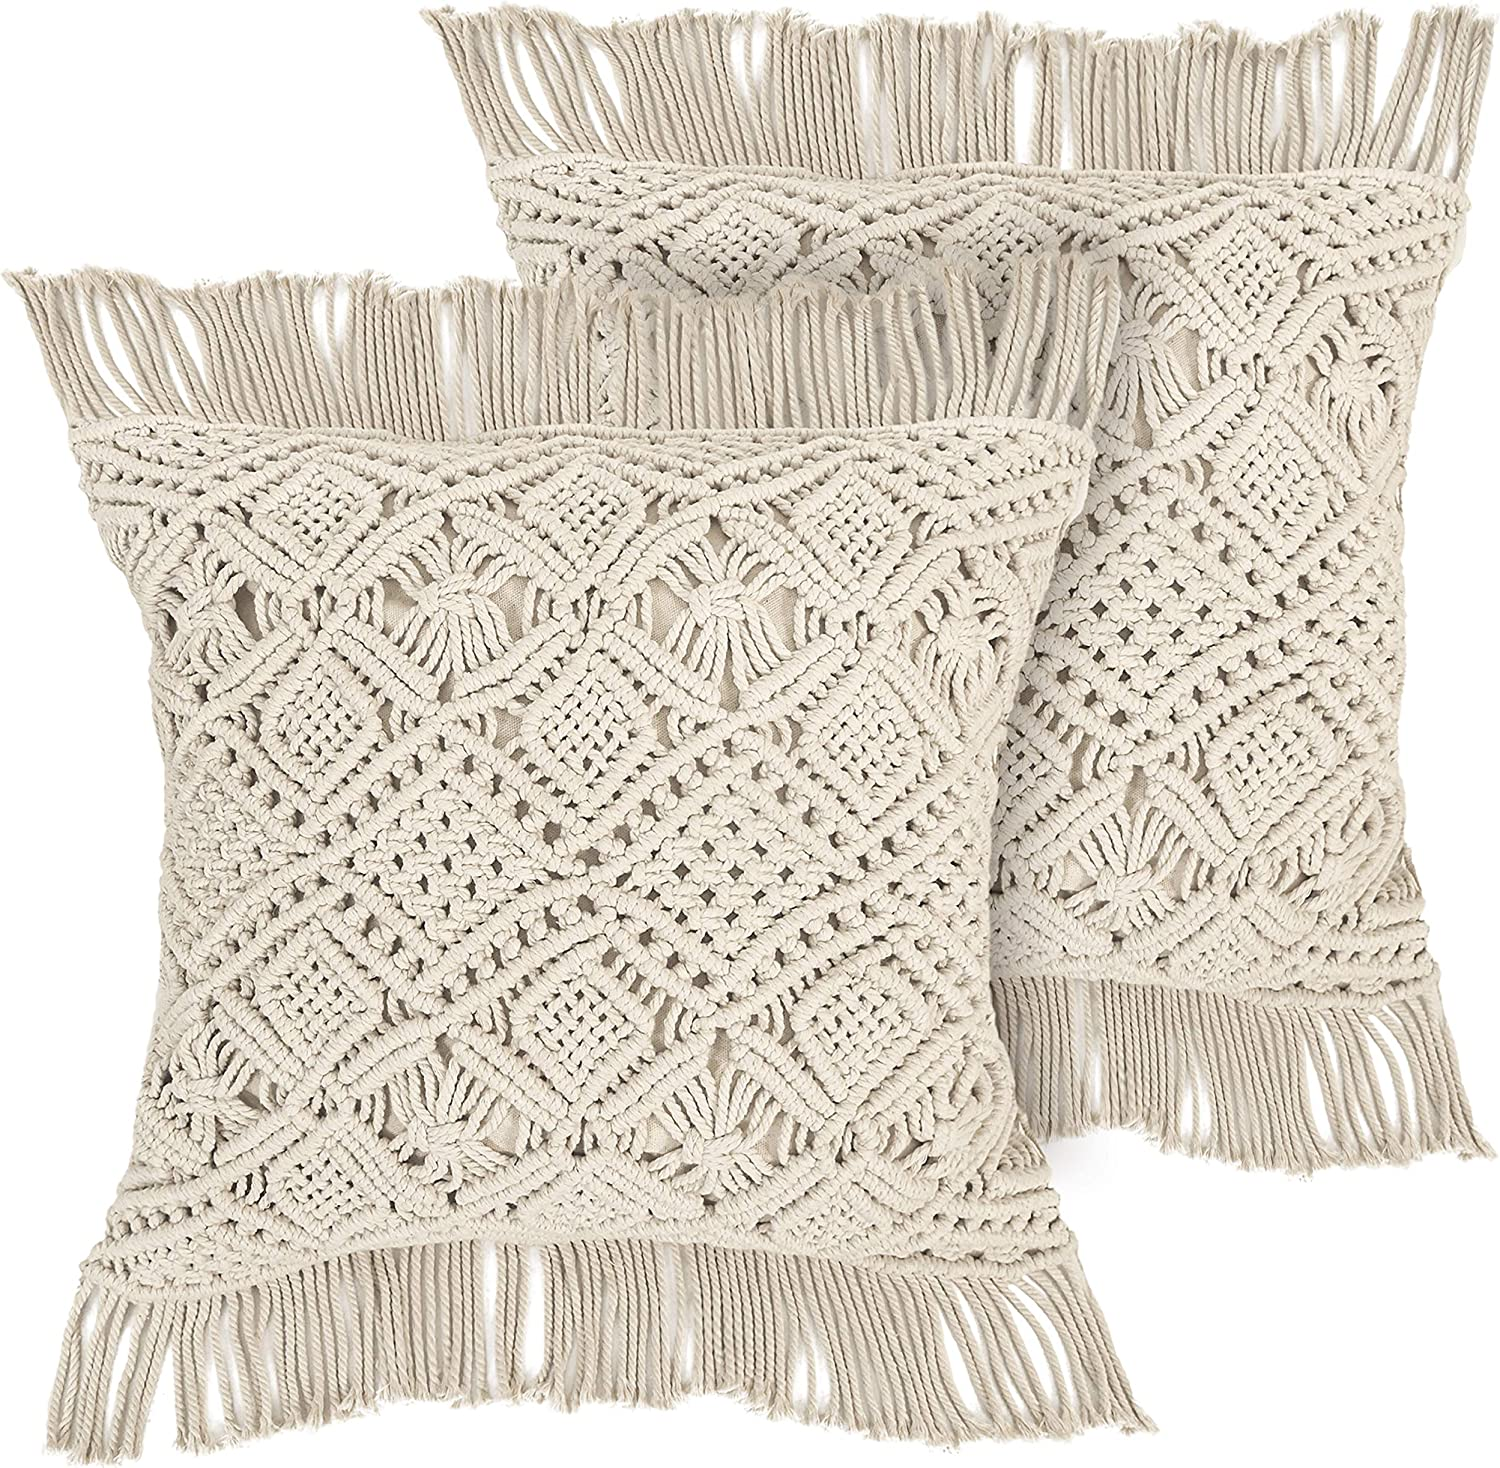 Livalaya Macrame Pillow Covers – 17 Inches Set of 2 Ivory Boho Throw Cushion Case, Farmhouse Woven Boho Cushion Cover with Tassels for Bed Sofa Couch Bench, Bohemian Home Decor, Decorative Pillowcase